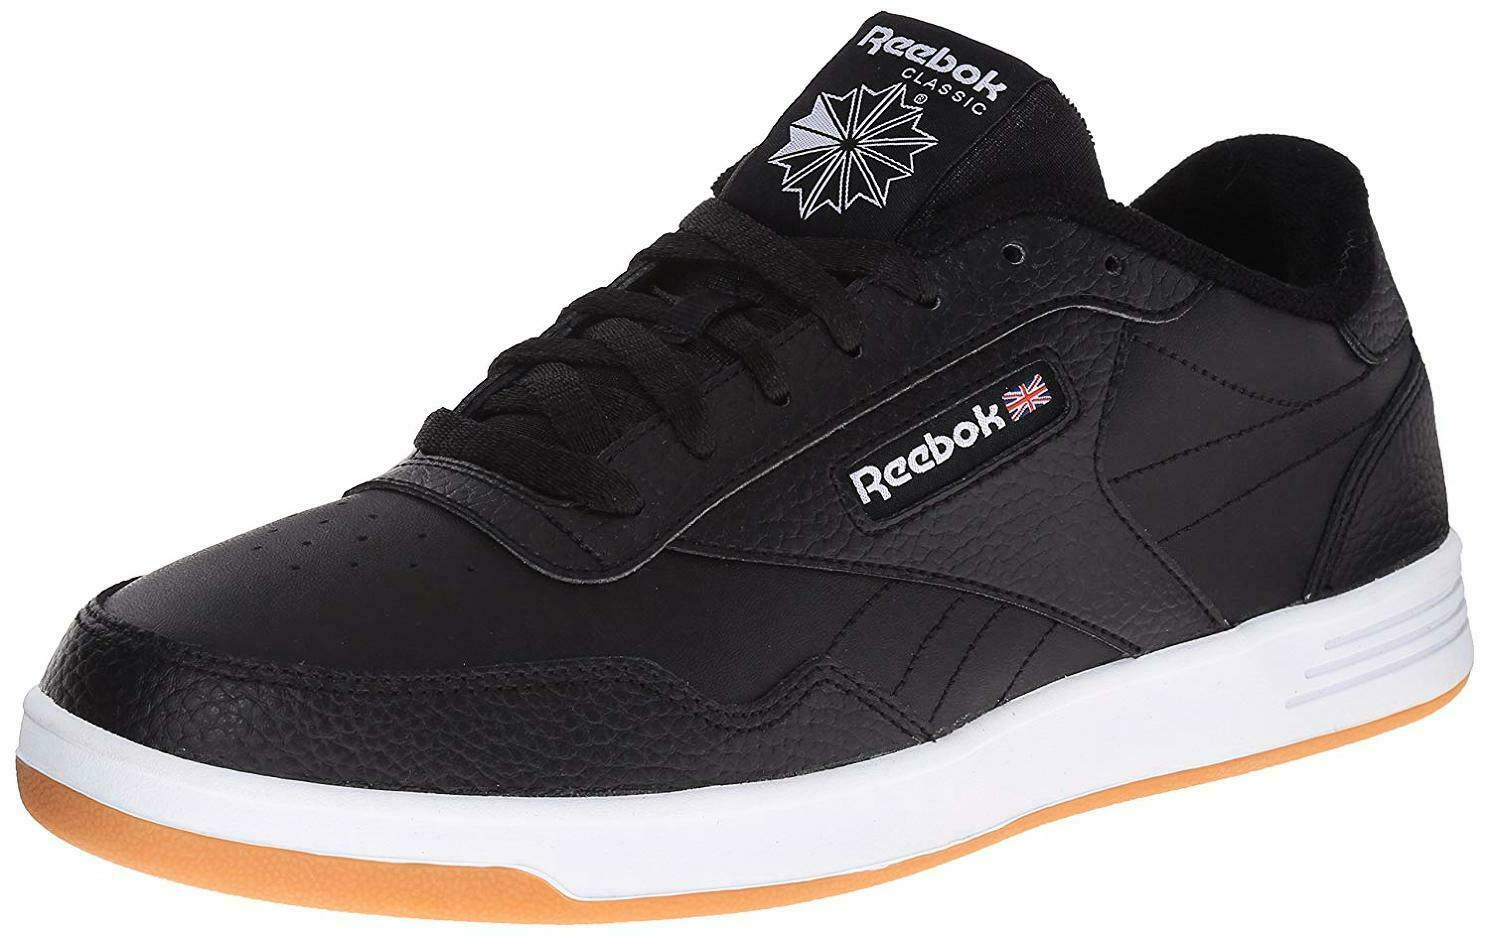 Reebok Men's Club Memt Gum Classic shoes - Choose SZ color